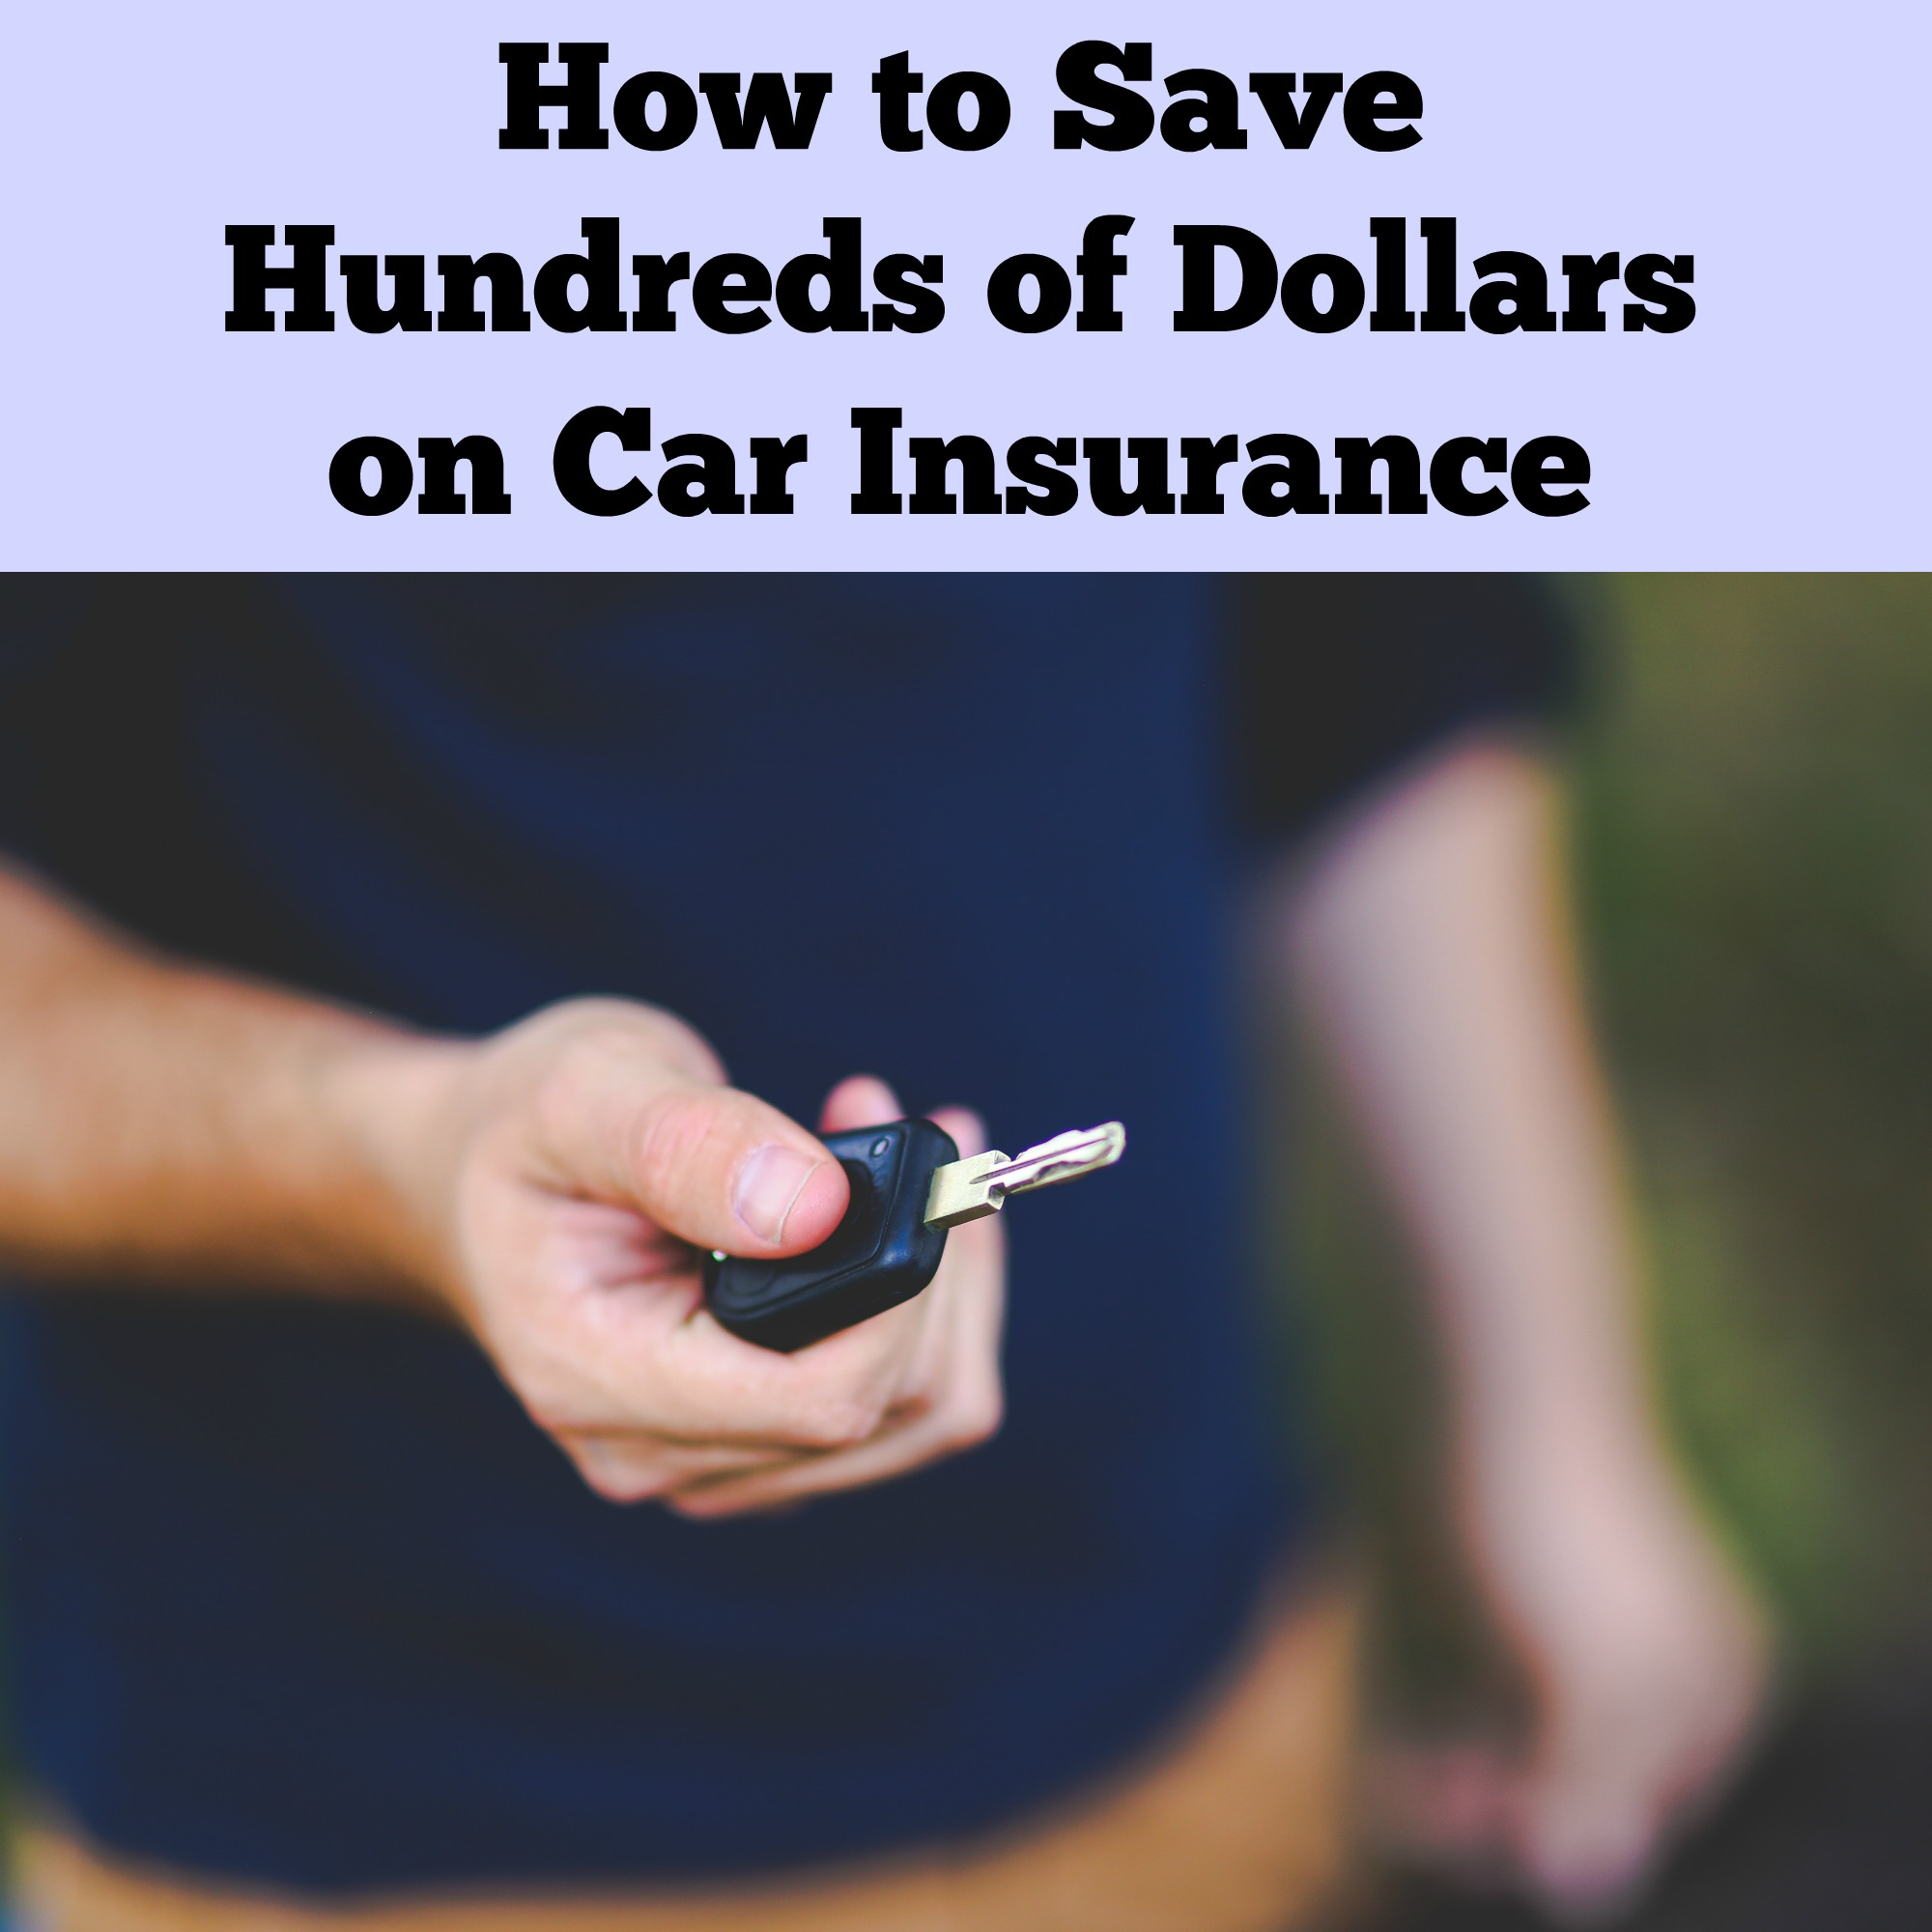 How To Save Hundreds Of Dollars On Car Insurance